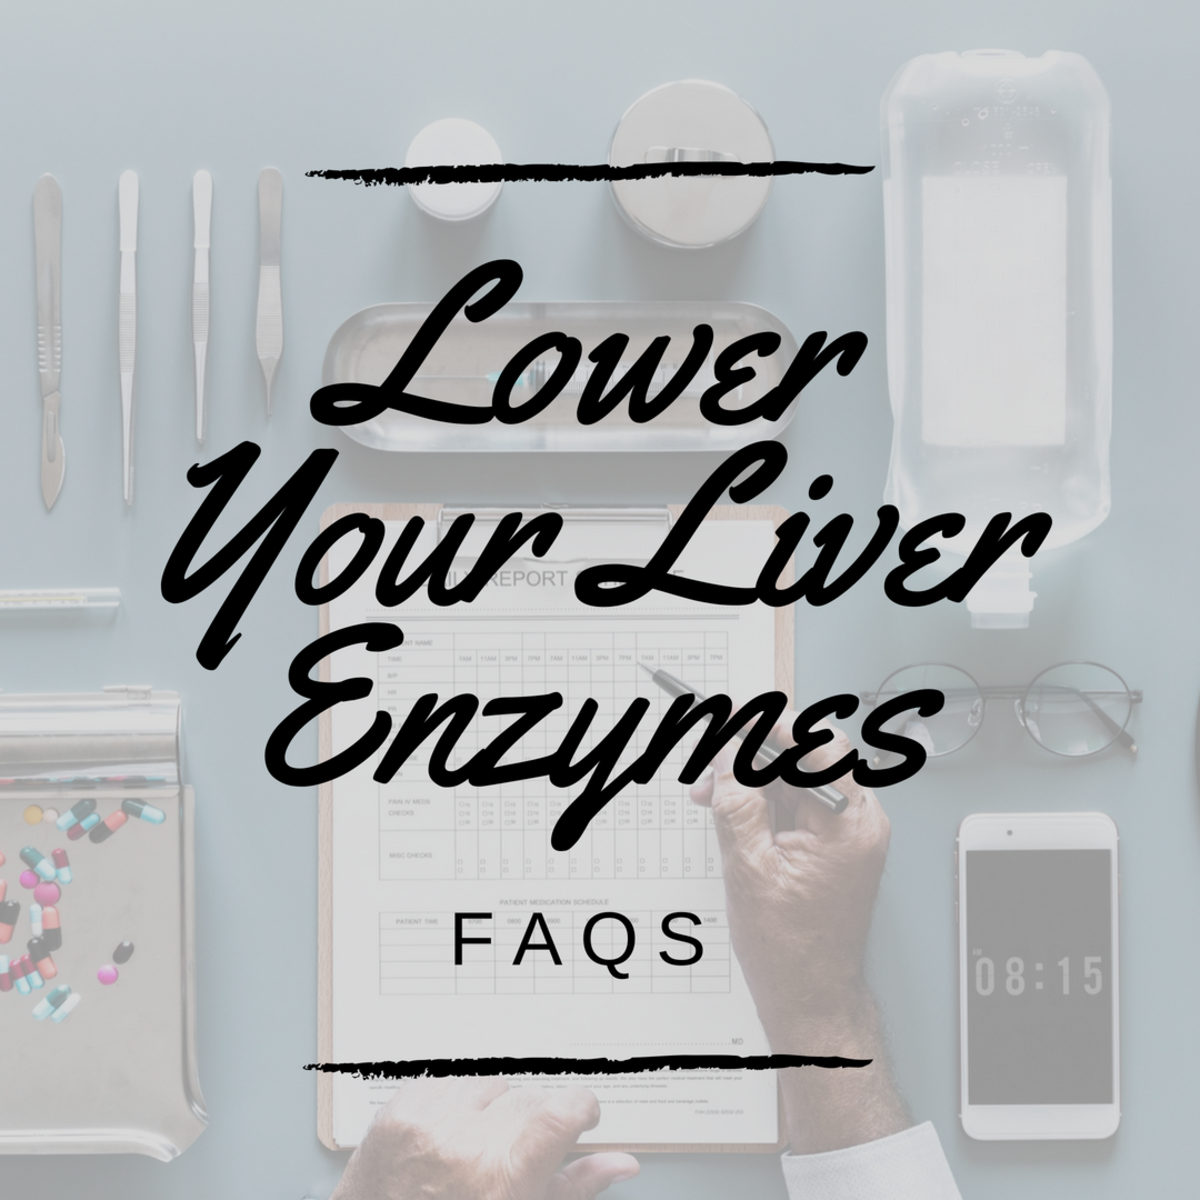 Elevated liver enzymes? Find out how to reverse this condition naturally.